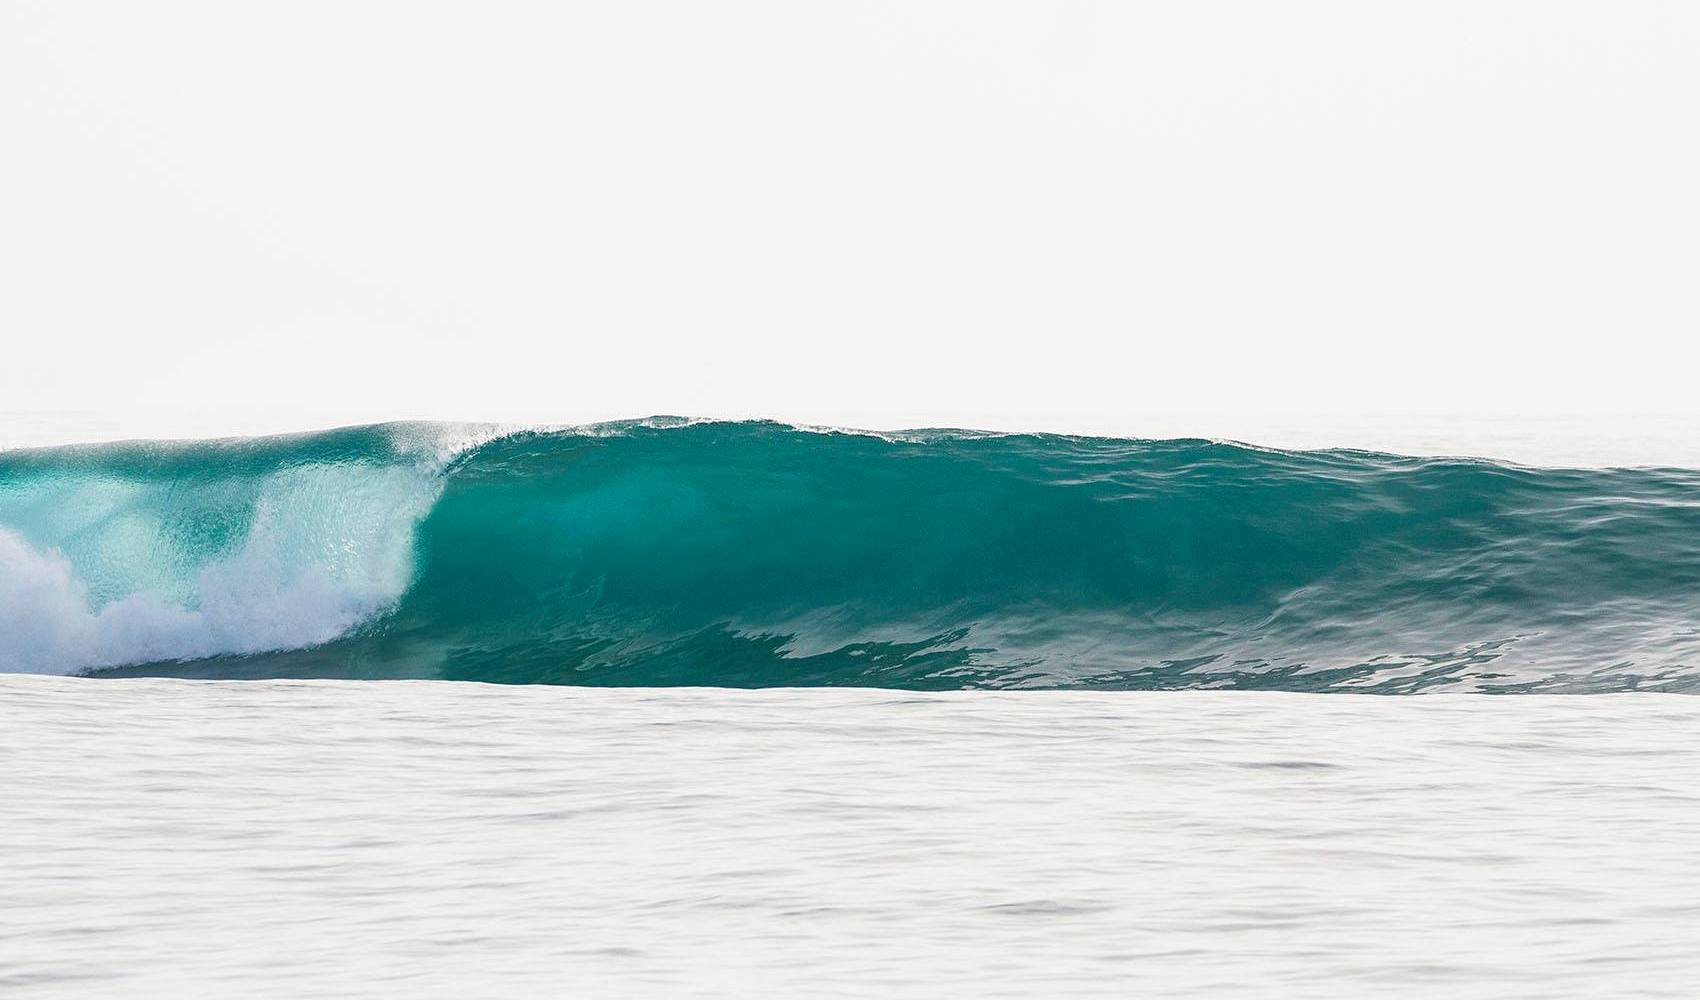 Telo_Island_Lodge_Surf_Indonesia left hander glassy.jpg